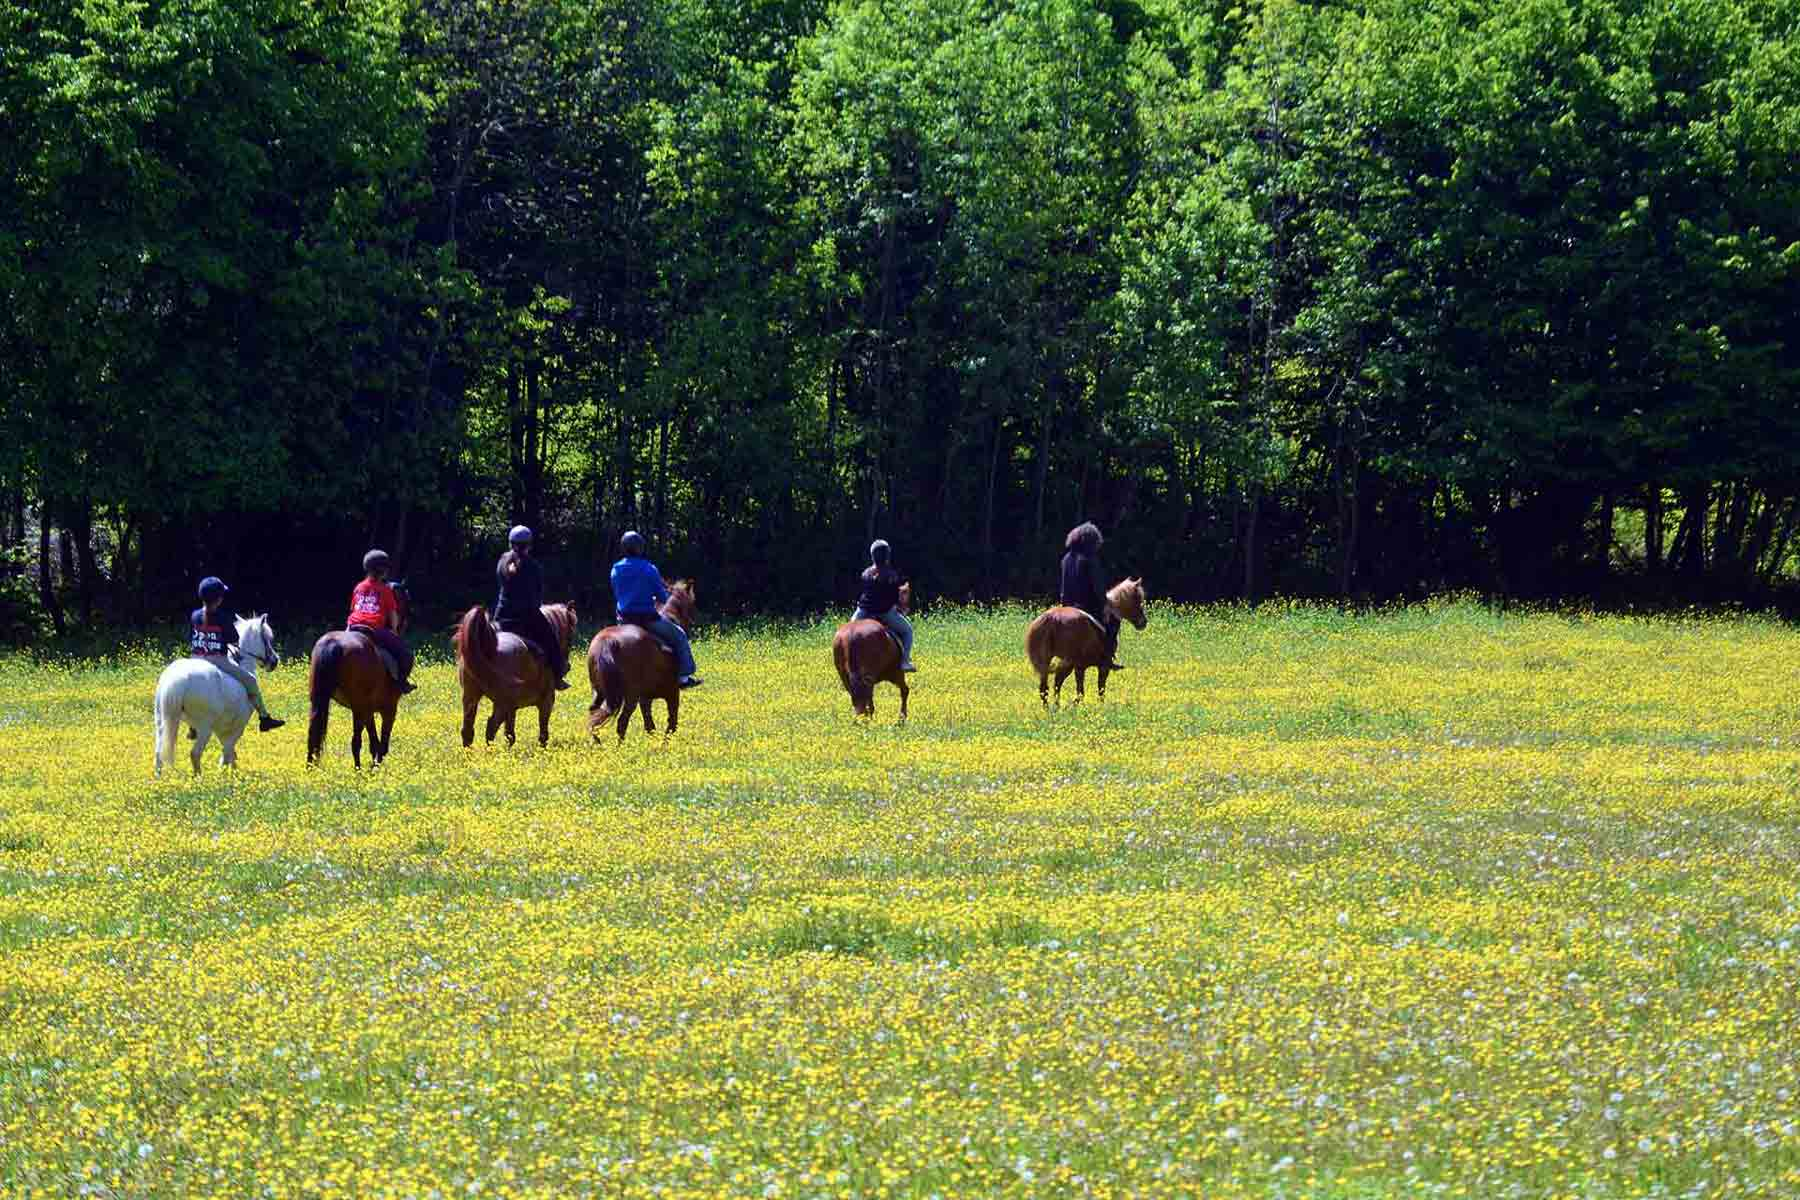 Horses in buttercup field